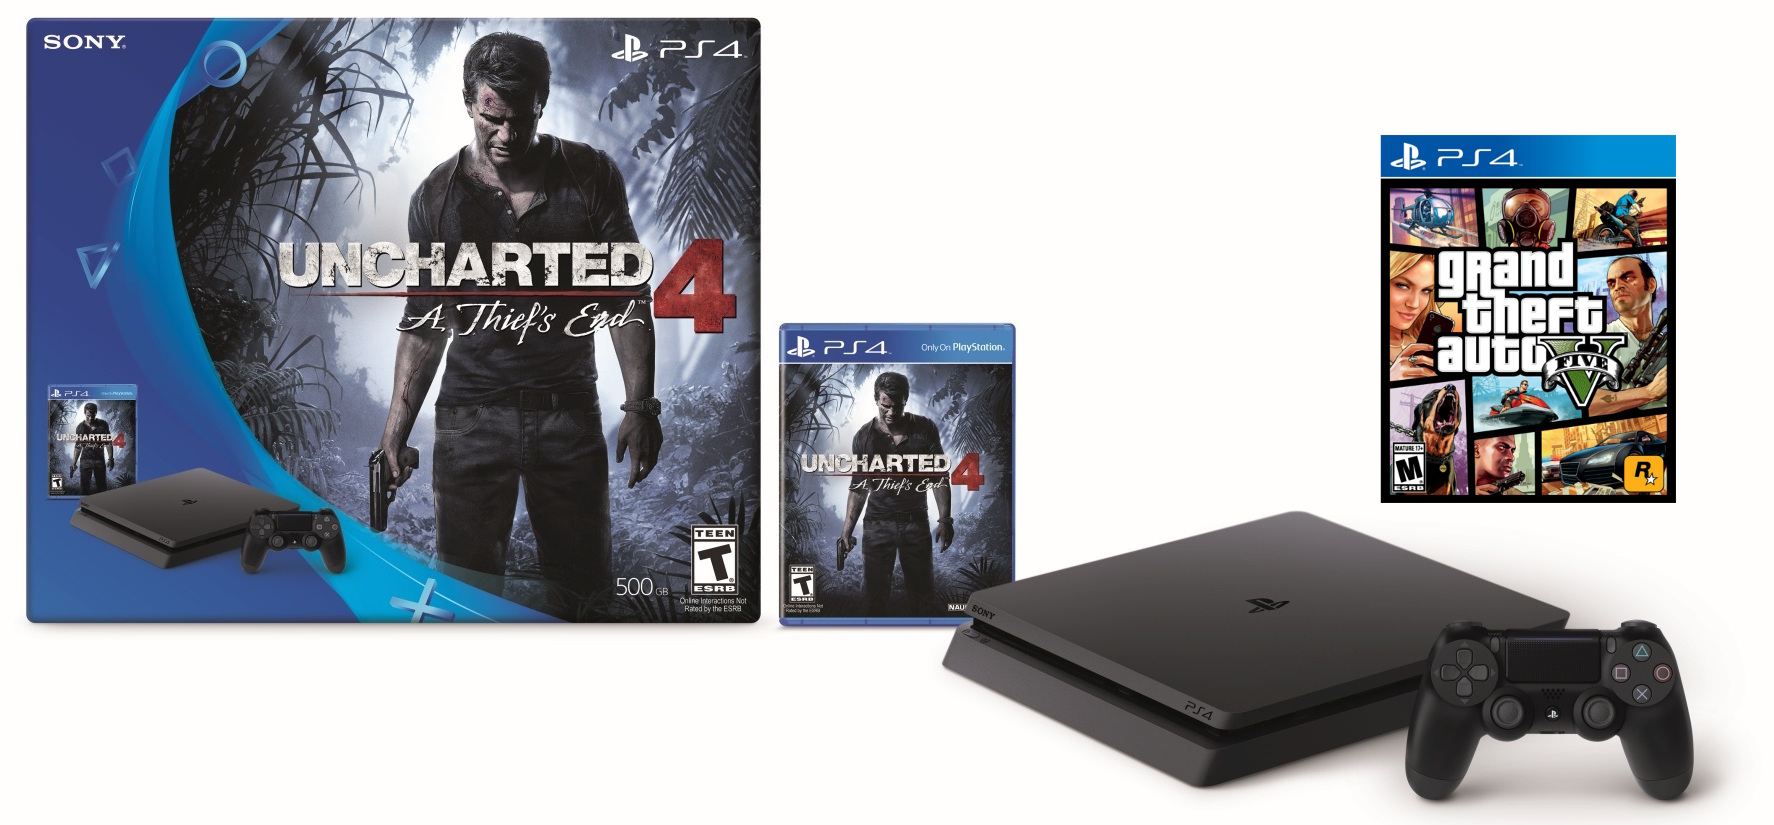 uncharted-4-ps4-slim-bundle-sale-01